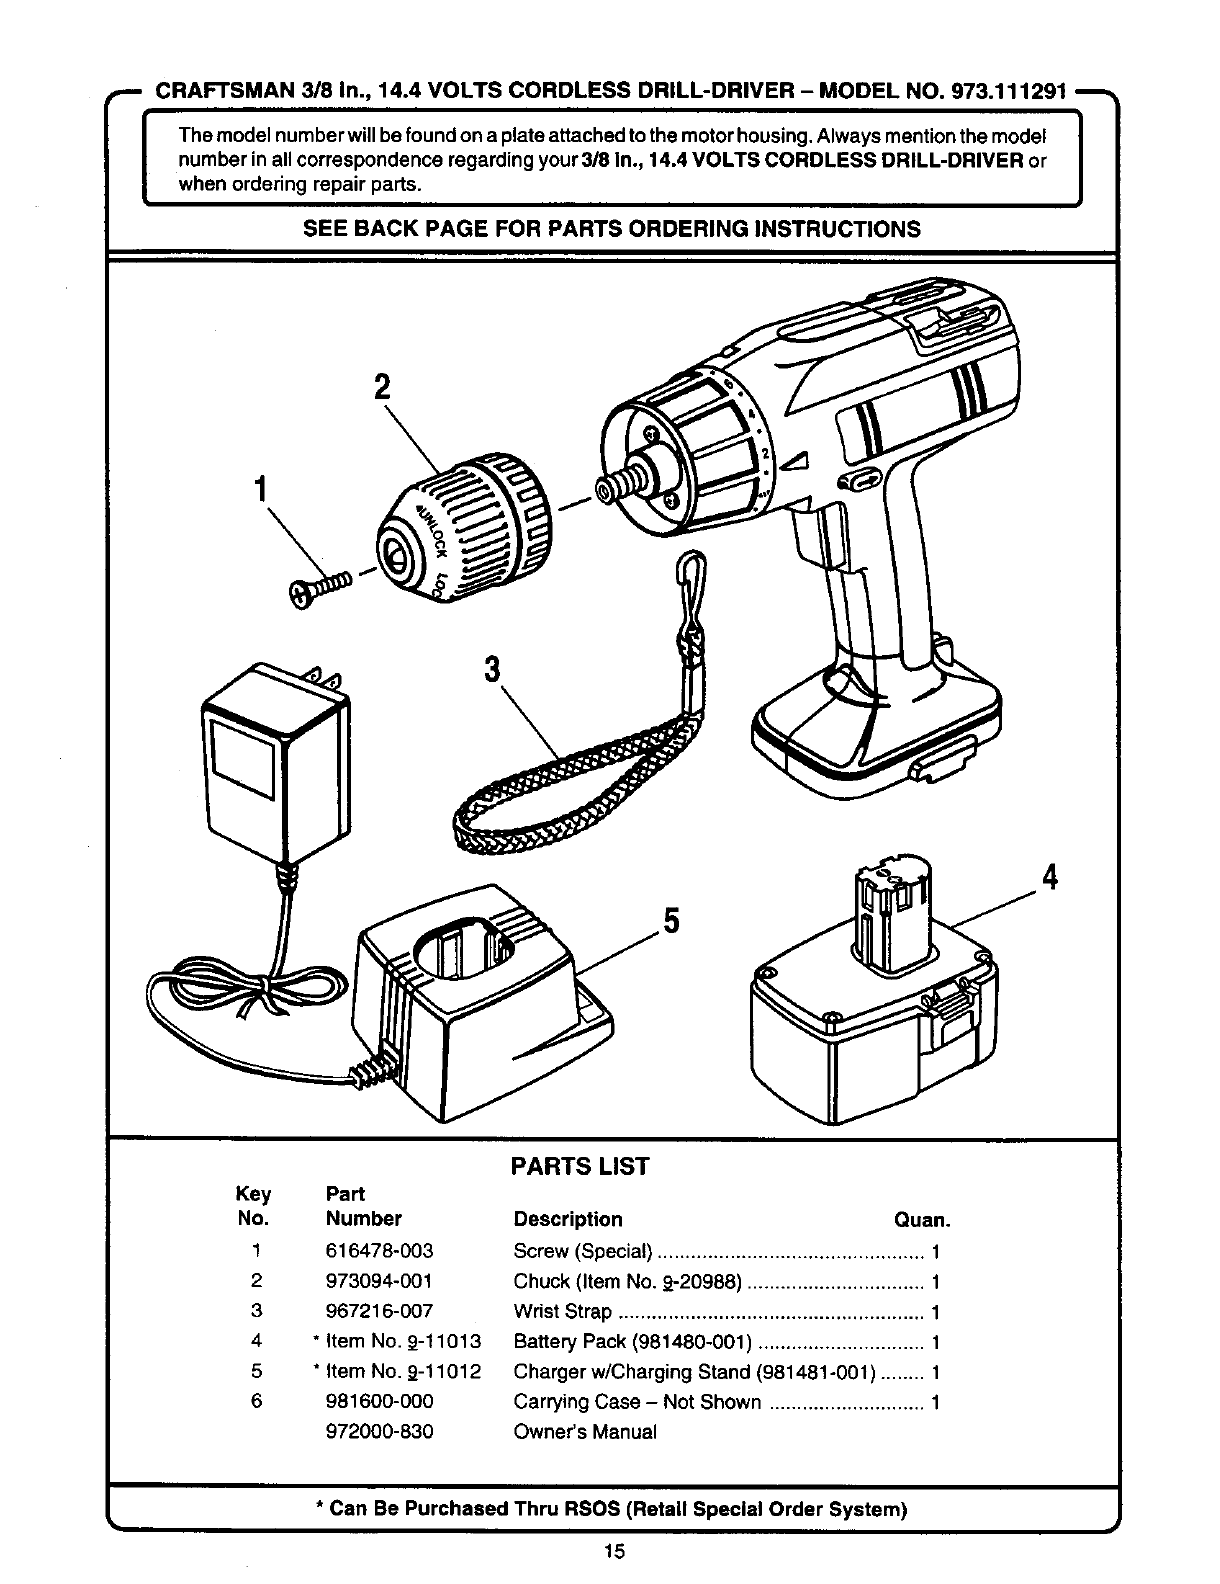 page 15 of craftsman cordless drill 973 111291 user guide rh powertool manualsonline com bosch cordless drill service manual bosch 18v drill manual